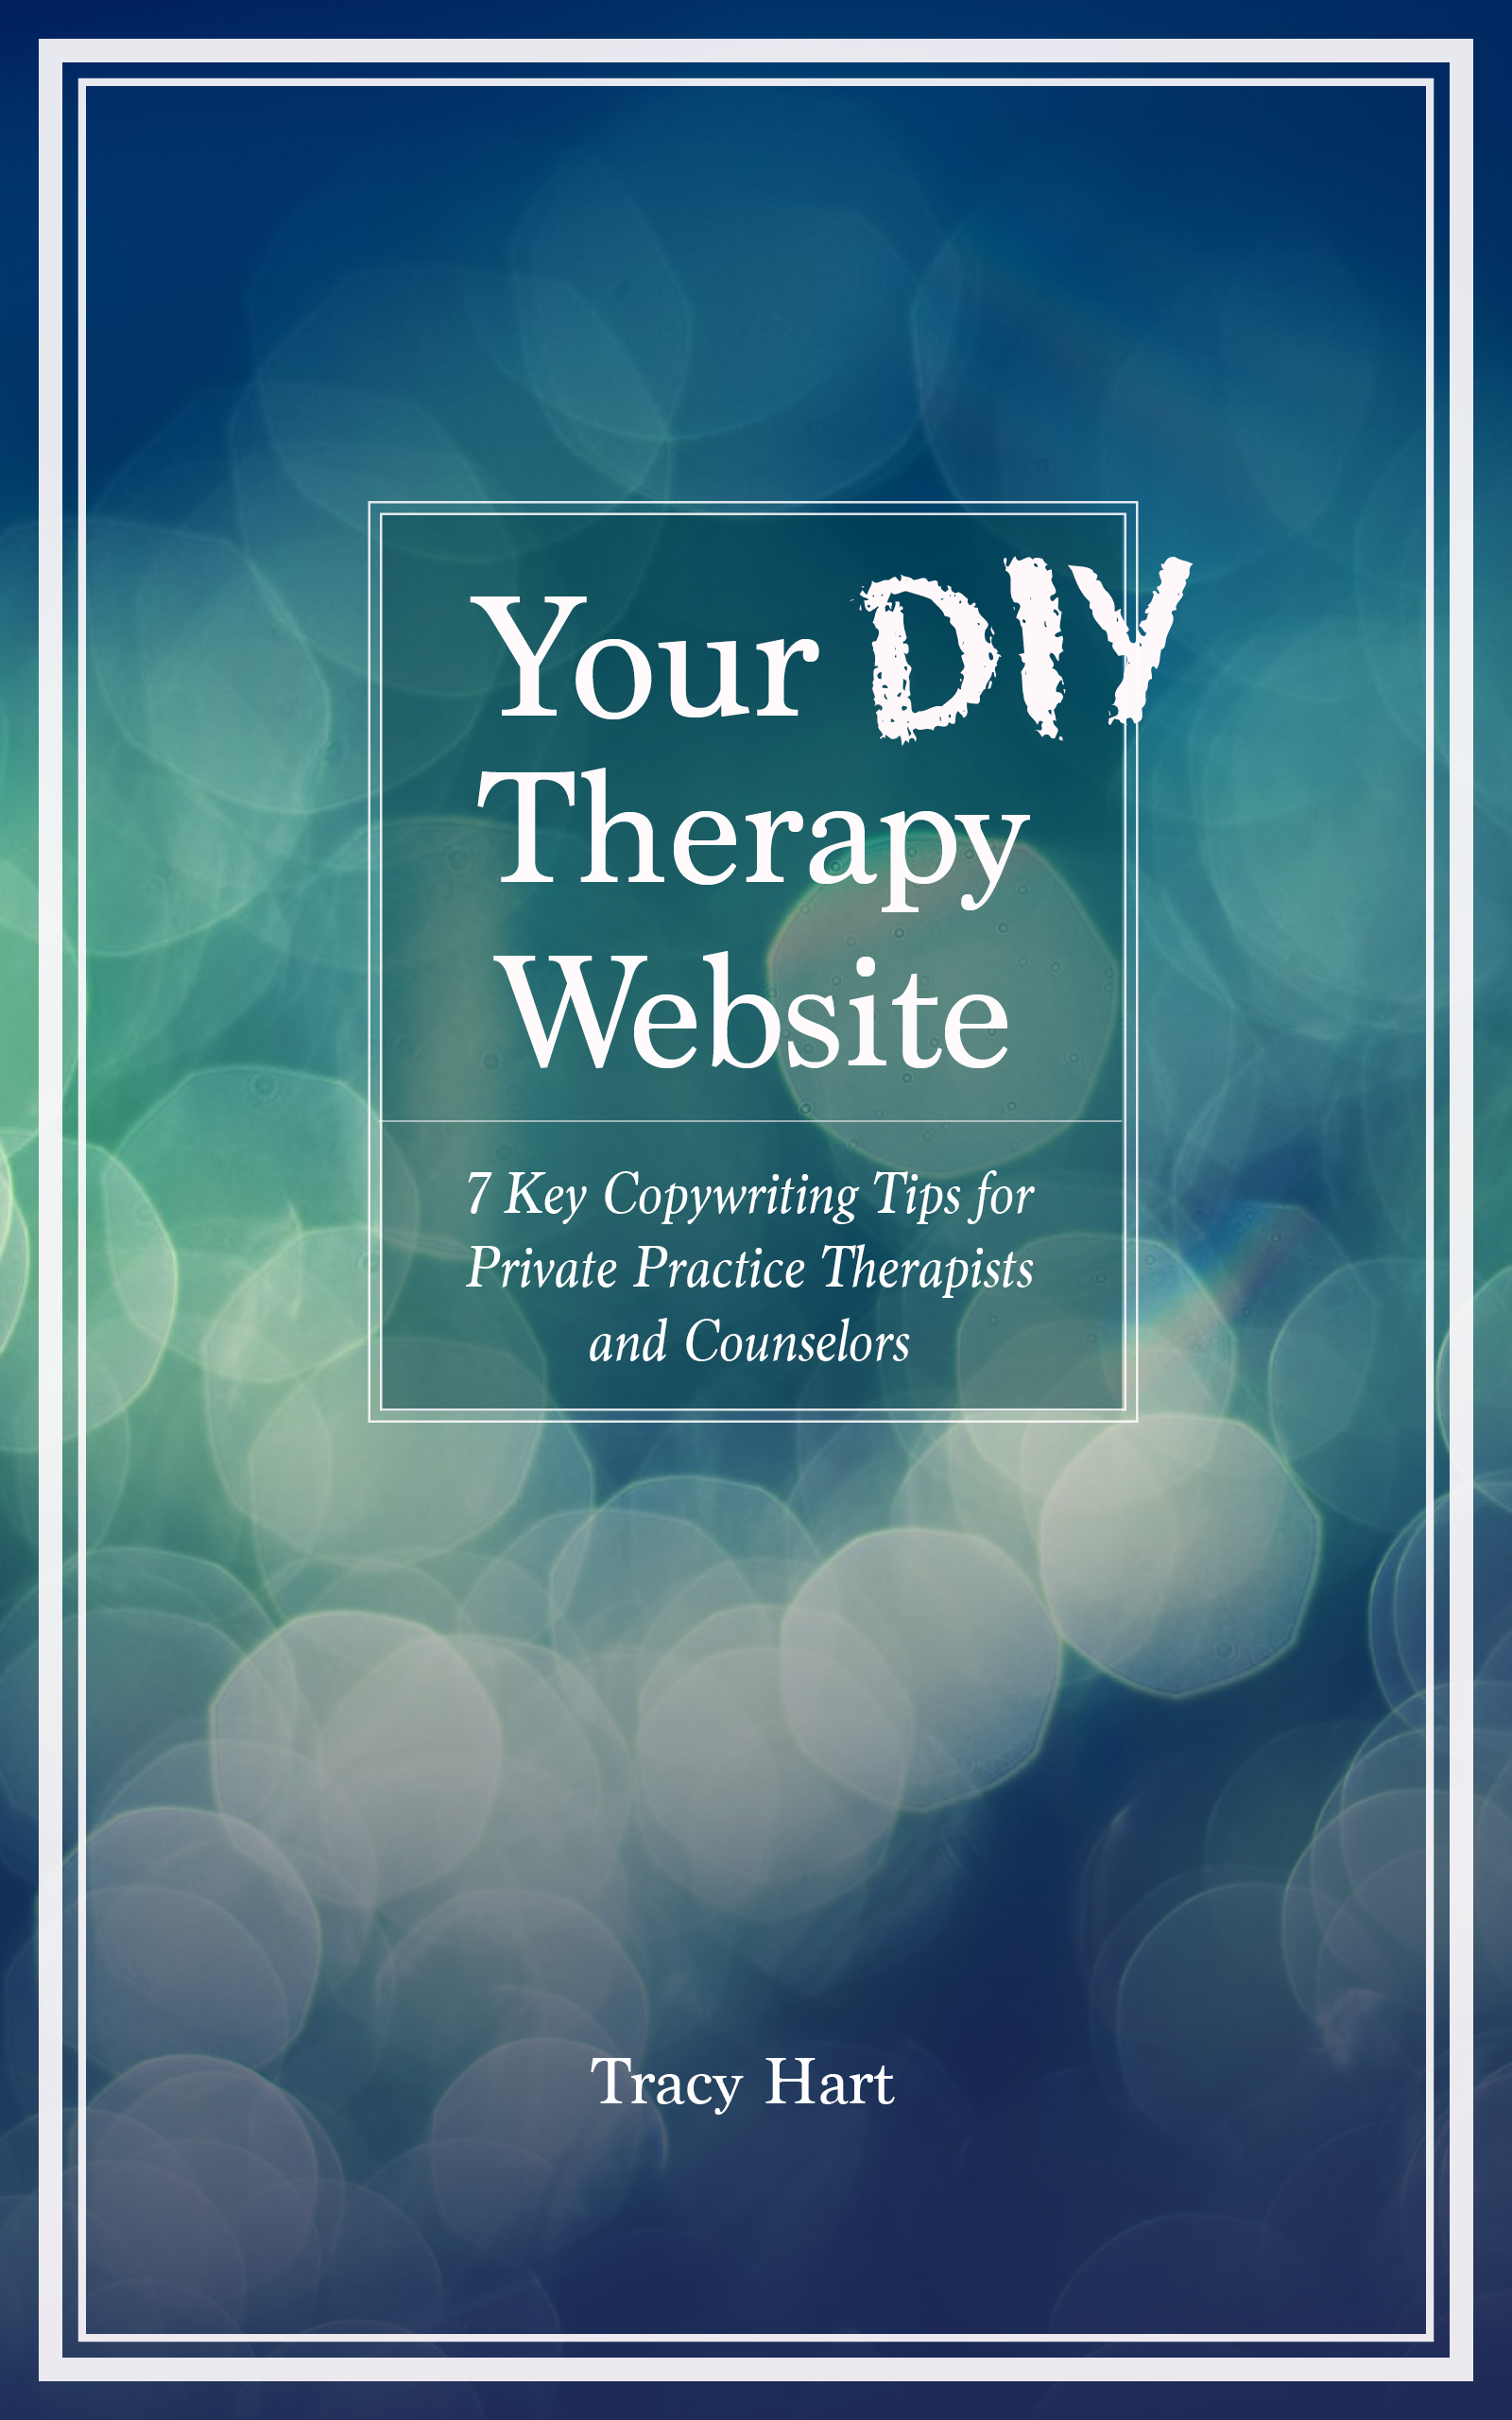 Your_DIY_Therapy_Website-Kindle-Cover.png